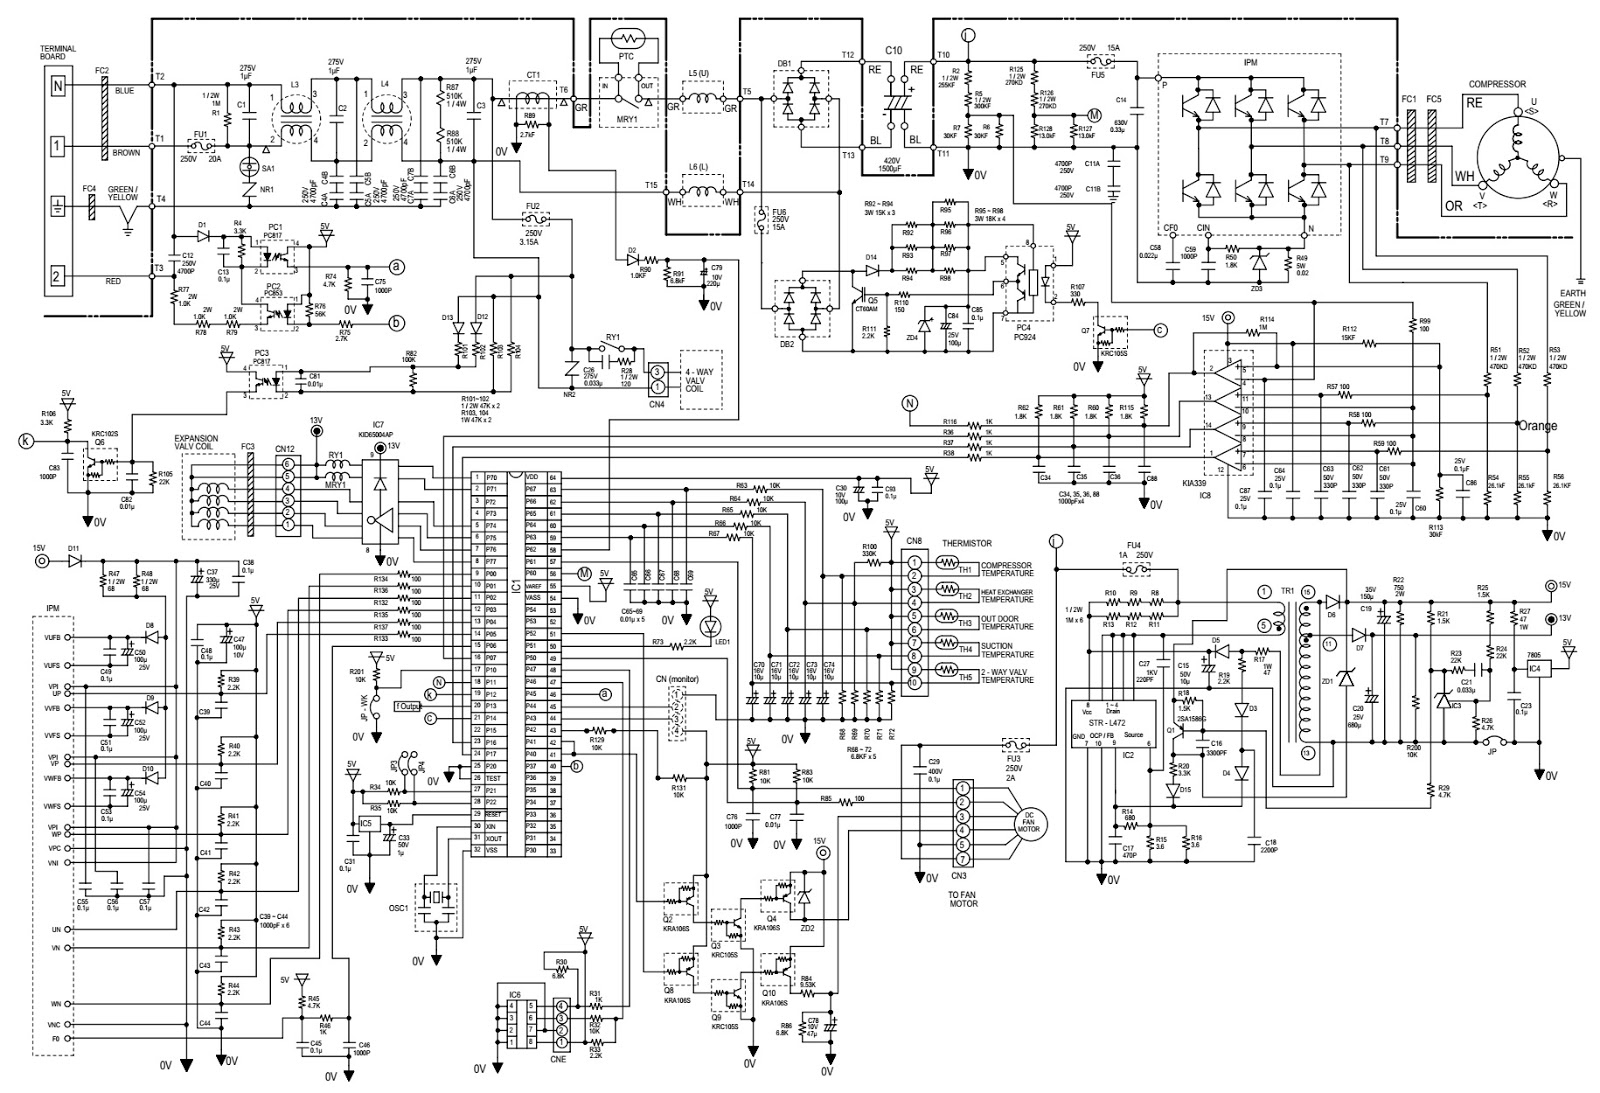 db25 to usb cable schematic